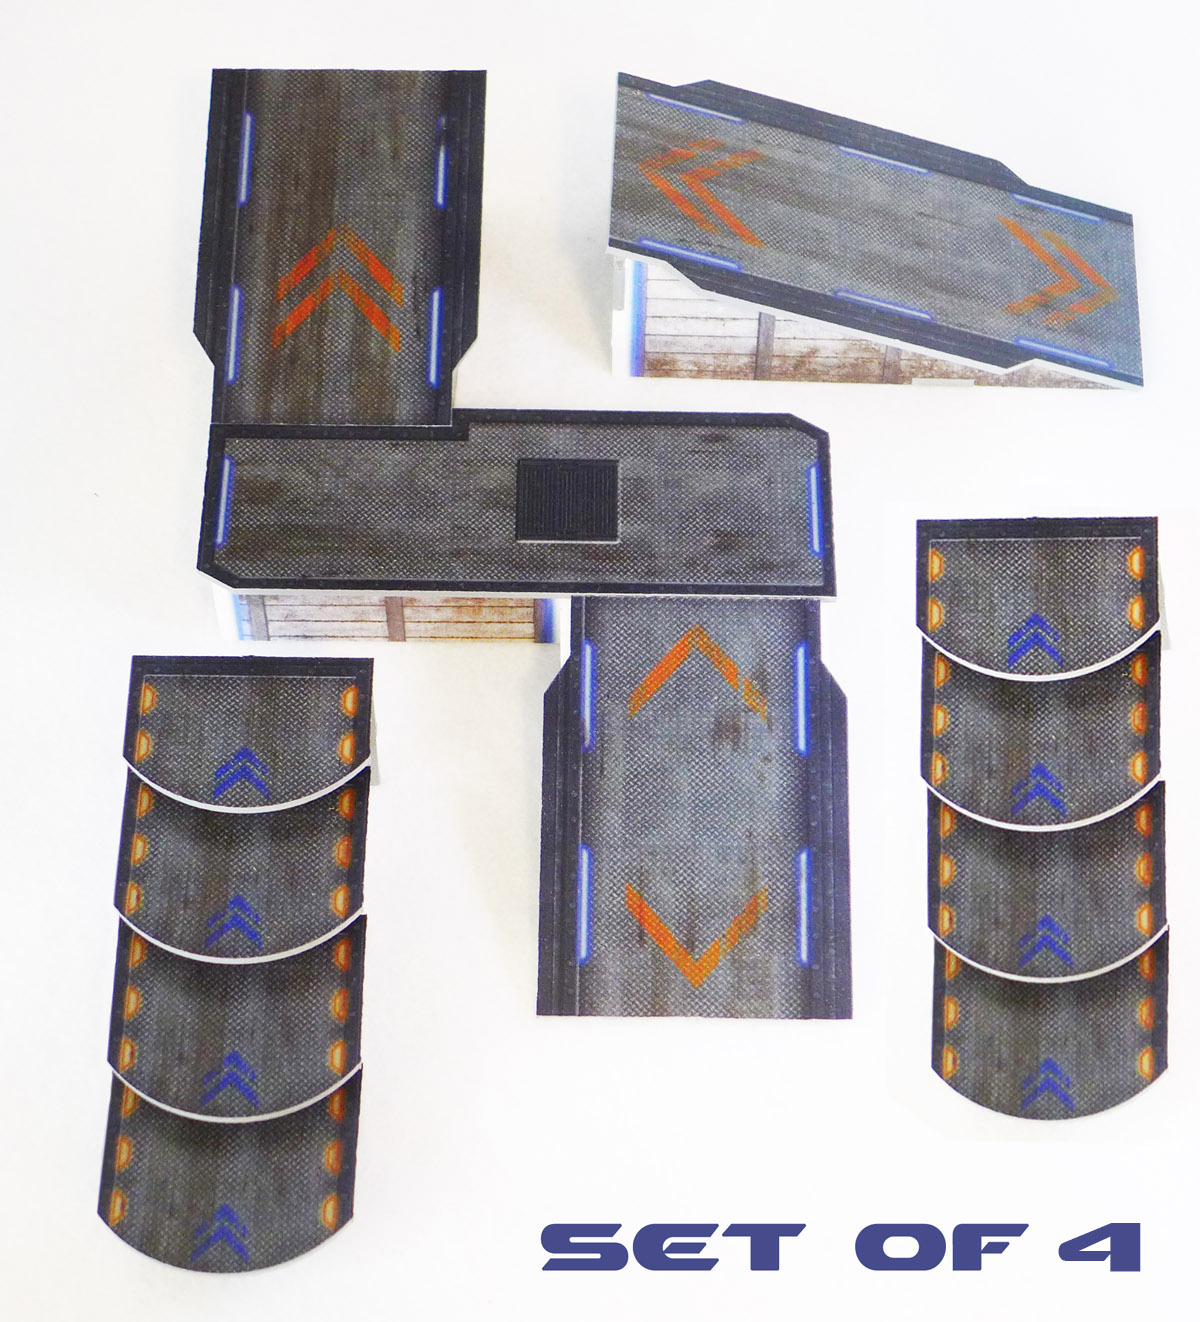 Sci-Fi Ramps and Stairs Set of 4